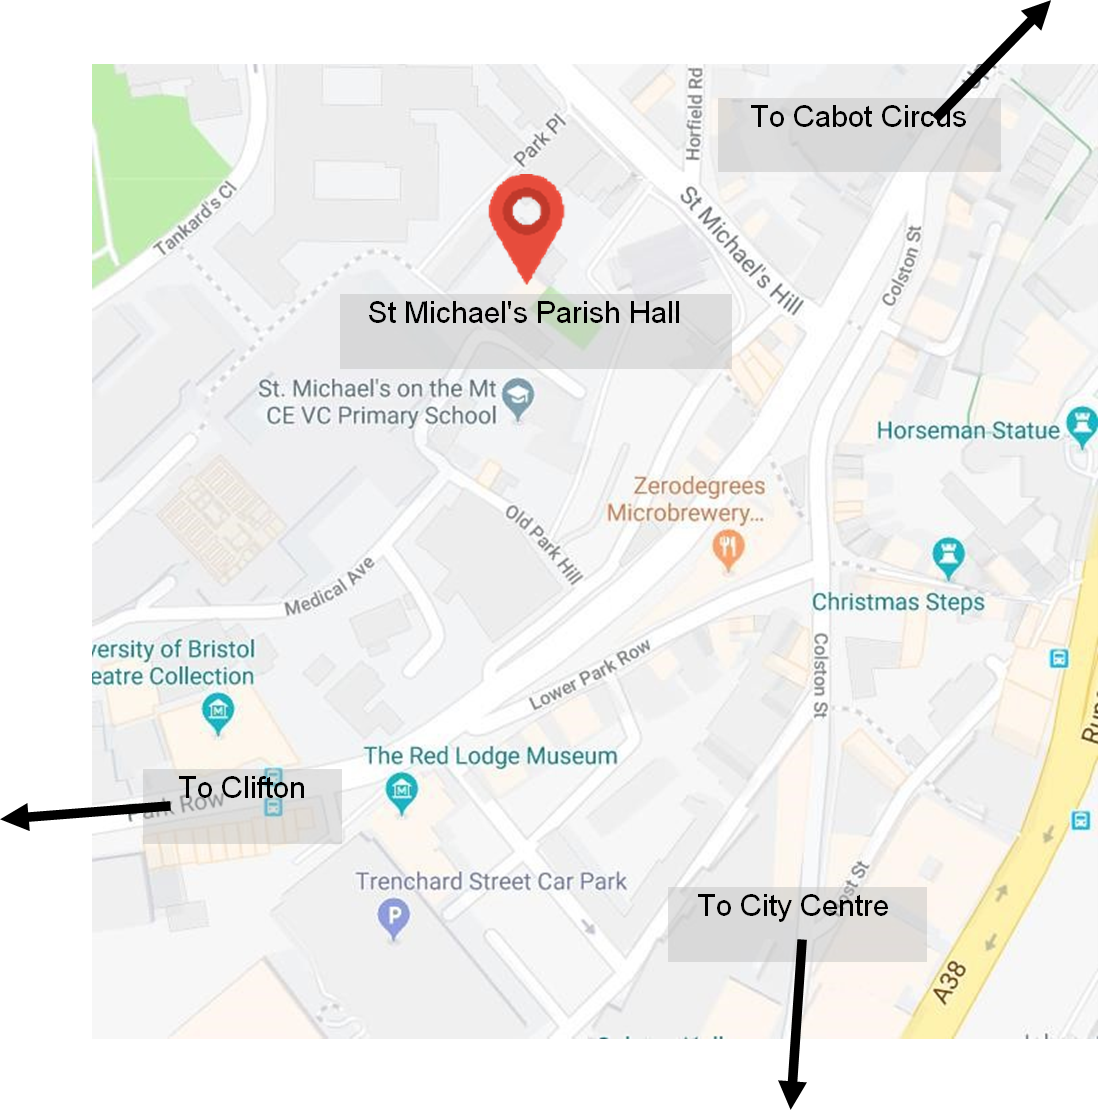 https://usercontent.one/wp/www.stmichaelsparishhall.co.uk/wp-content/uploads/2021/04/Map.png